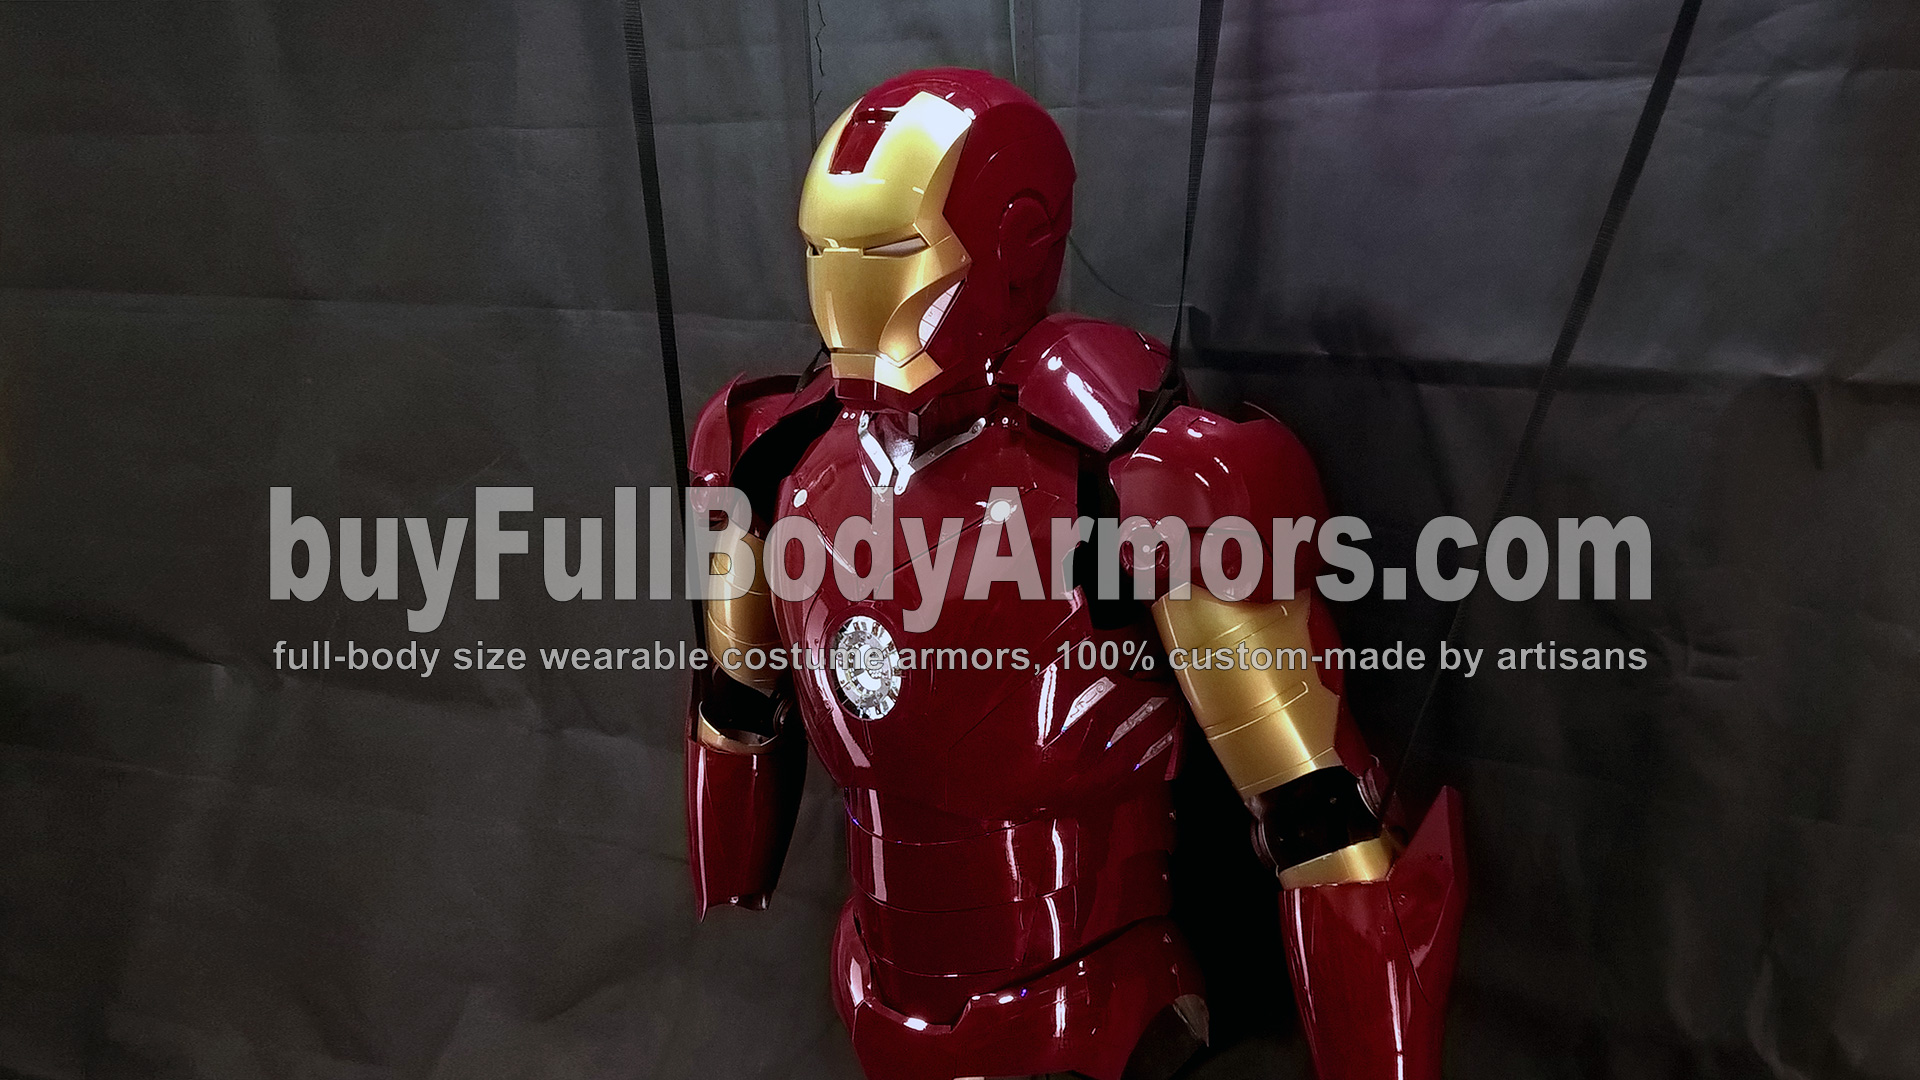 The Wearable Iron Man Suit Mark 3 III Armor Costume - Top Half Prototype 5